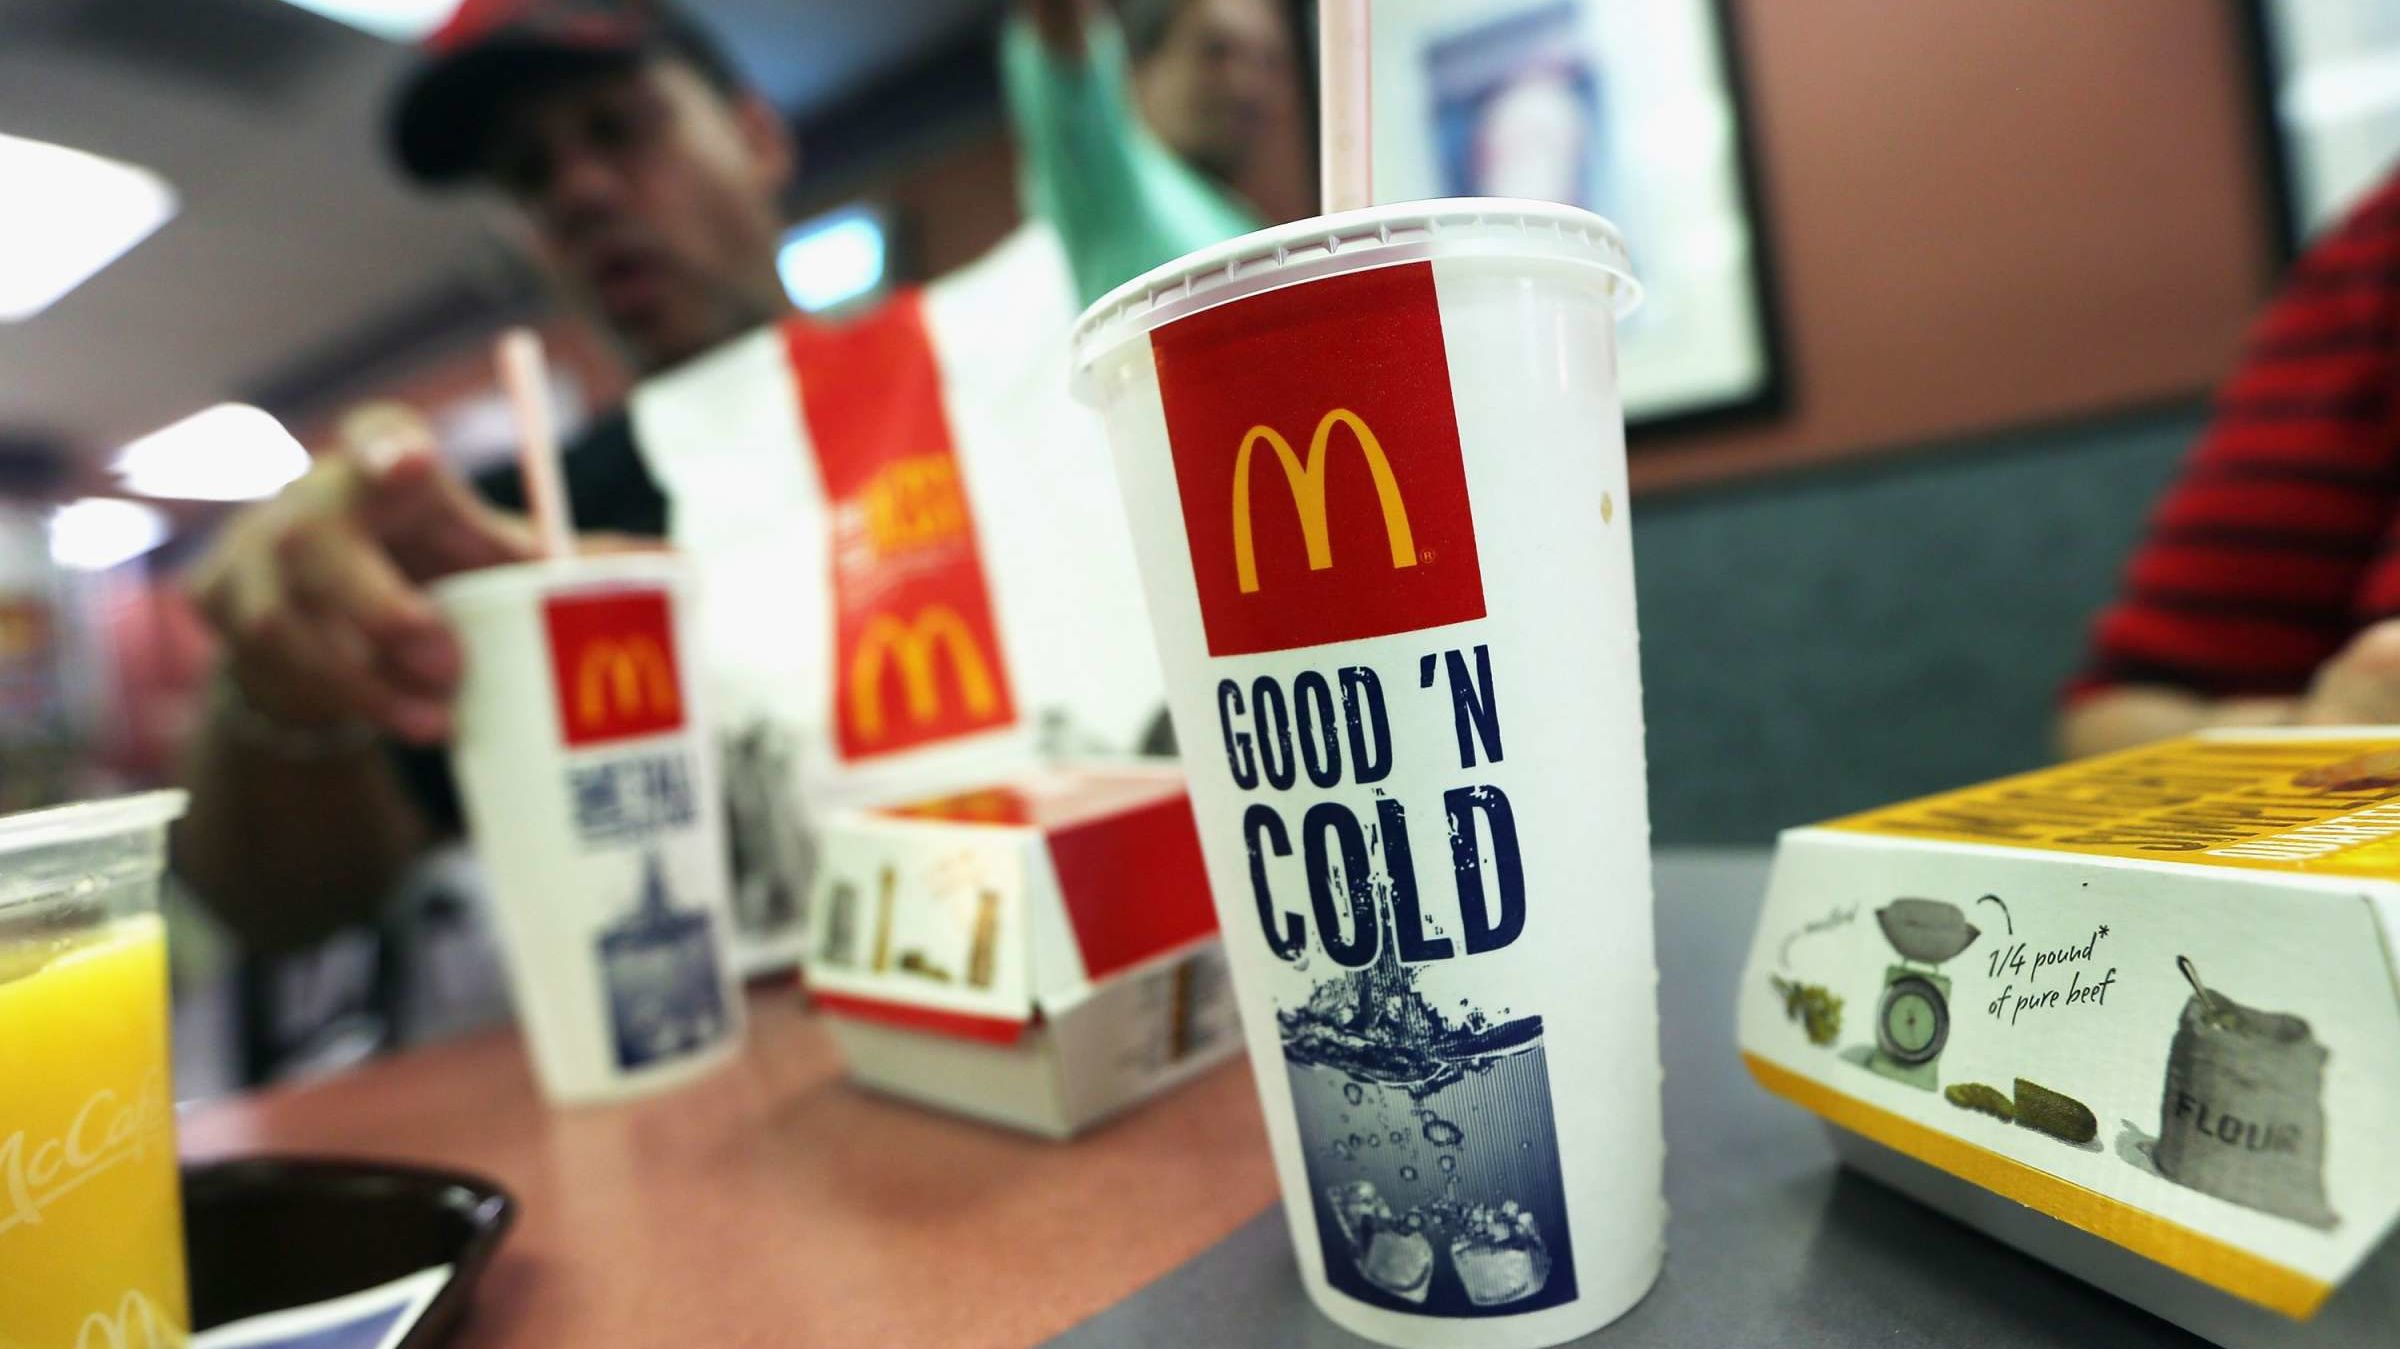 Here's Why The Coke At Mcdonald's Is So Good photo